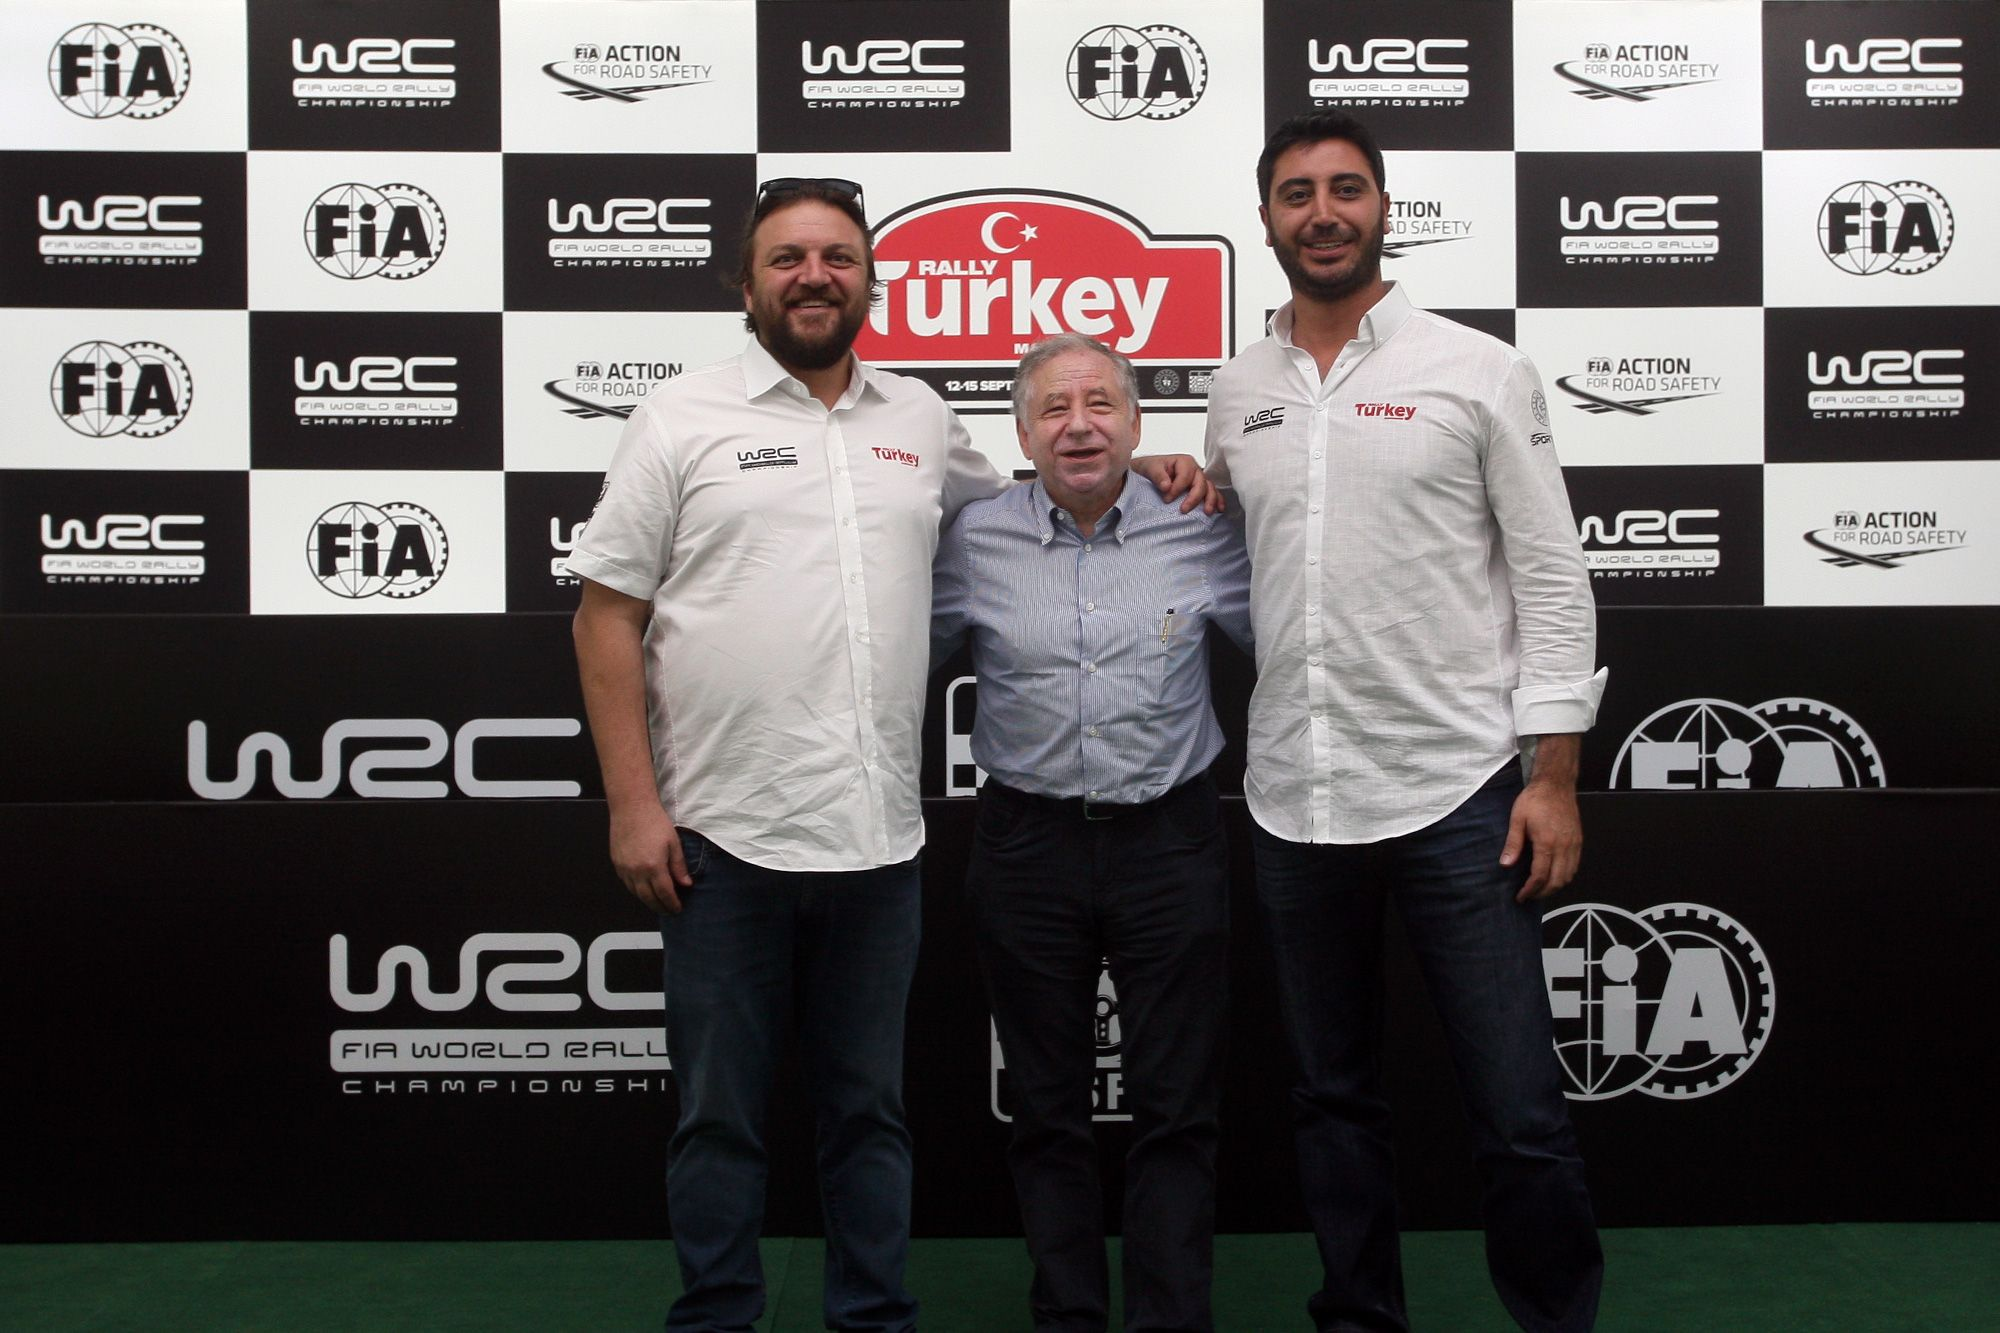 FIA President Jean Todt Visits Rally Turkey